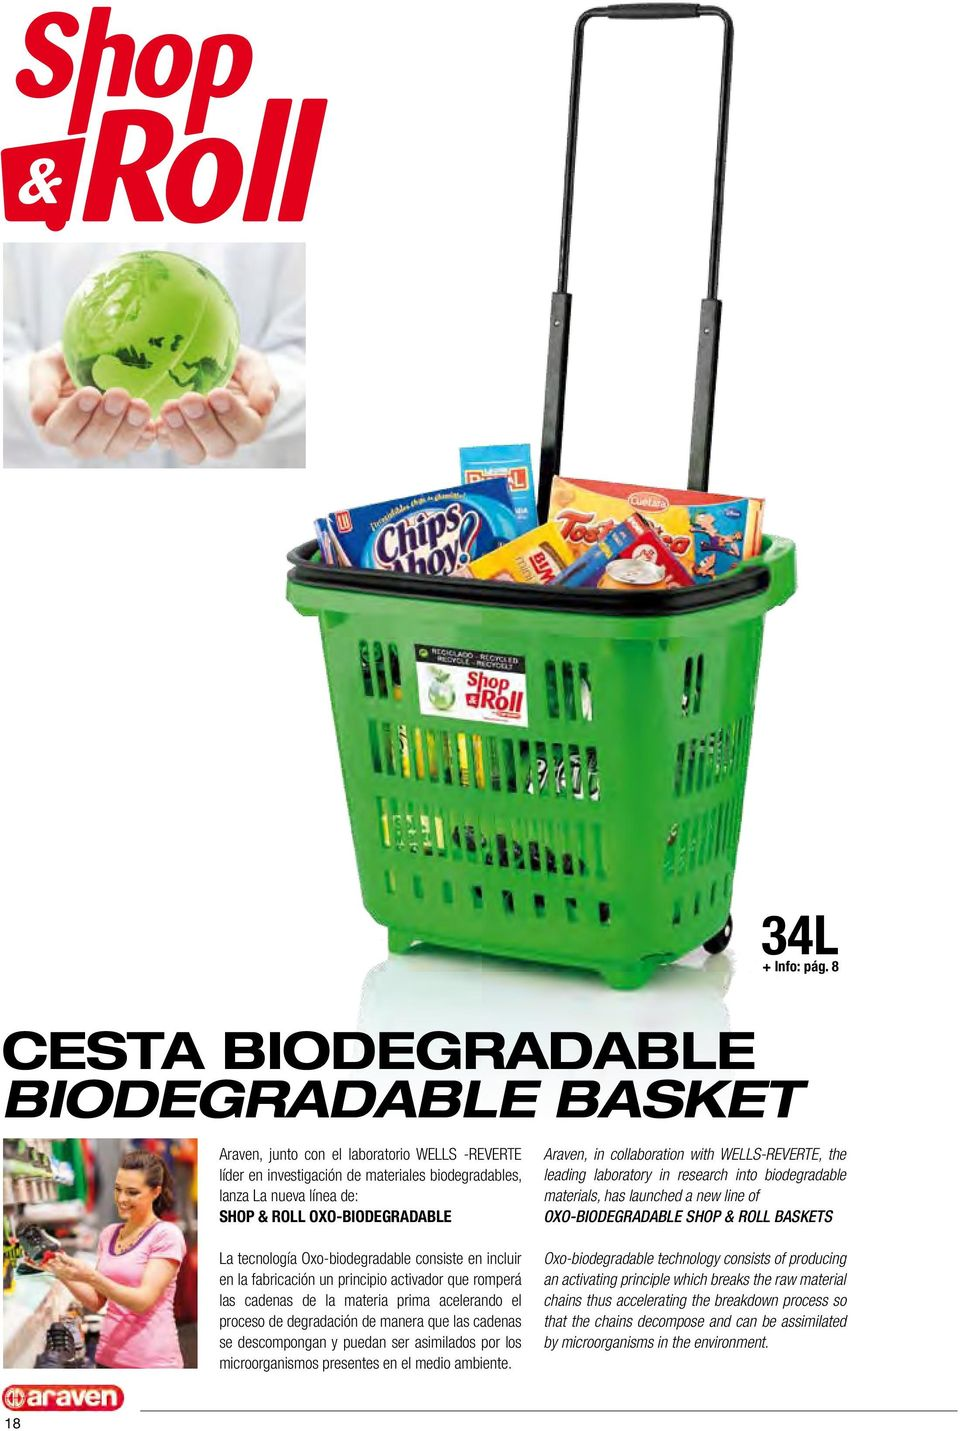 Araven, in collaboration with WELLS-REVERTE, the leading laboratory in research into biodegradable materials, has launched a new line of OXO-BIODEGRADABLE SHOP & ROLL BASKETS La tecnología